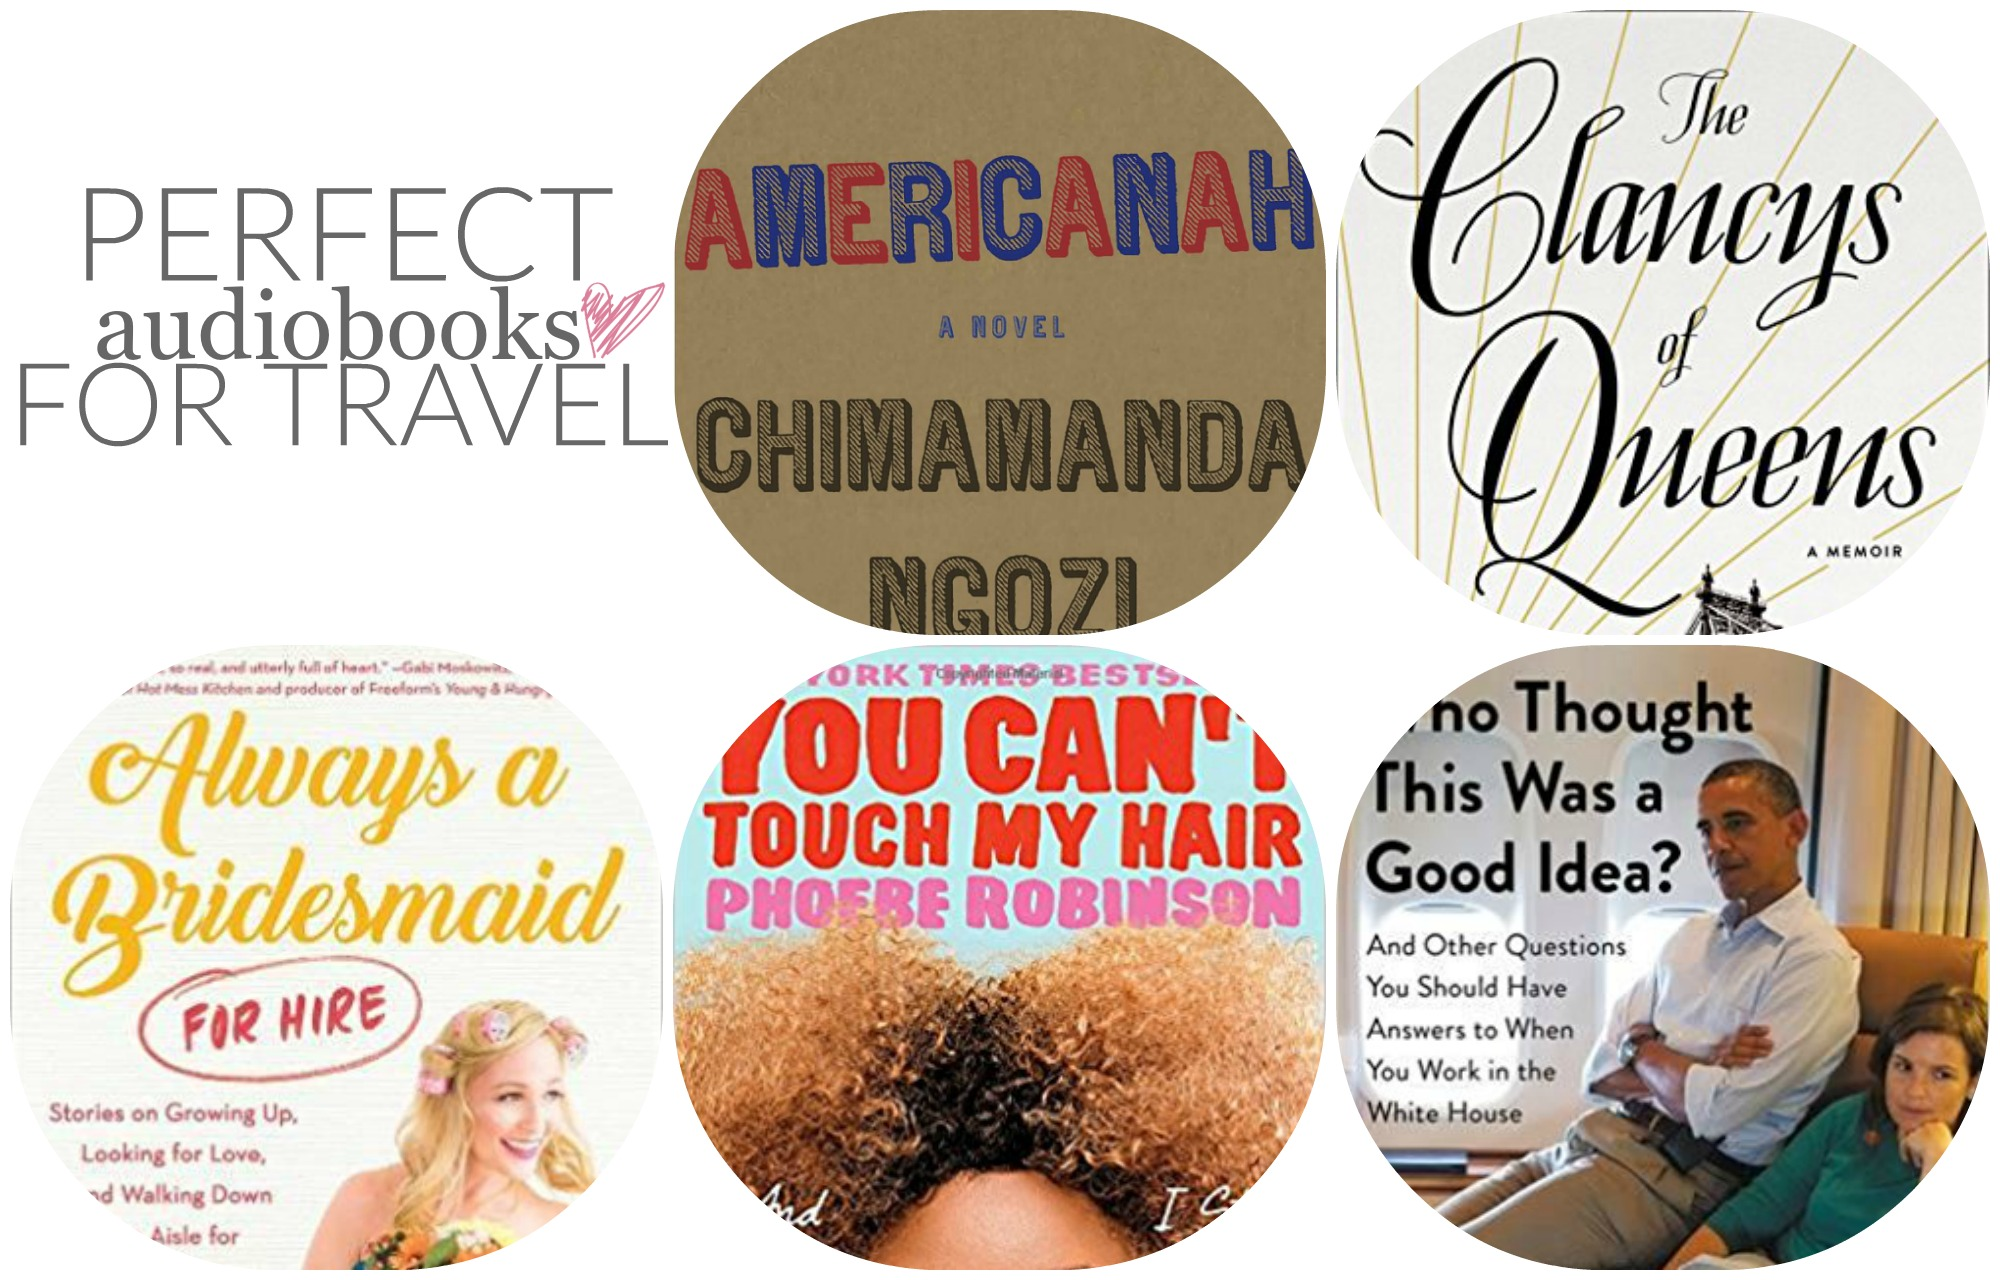 Sunday Book Club: Perfect Audiobooks for Traveling | Something Good